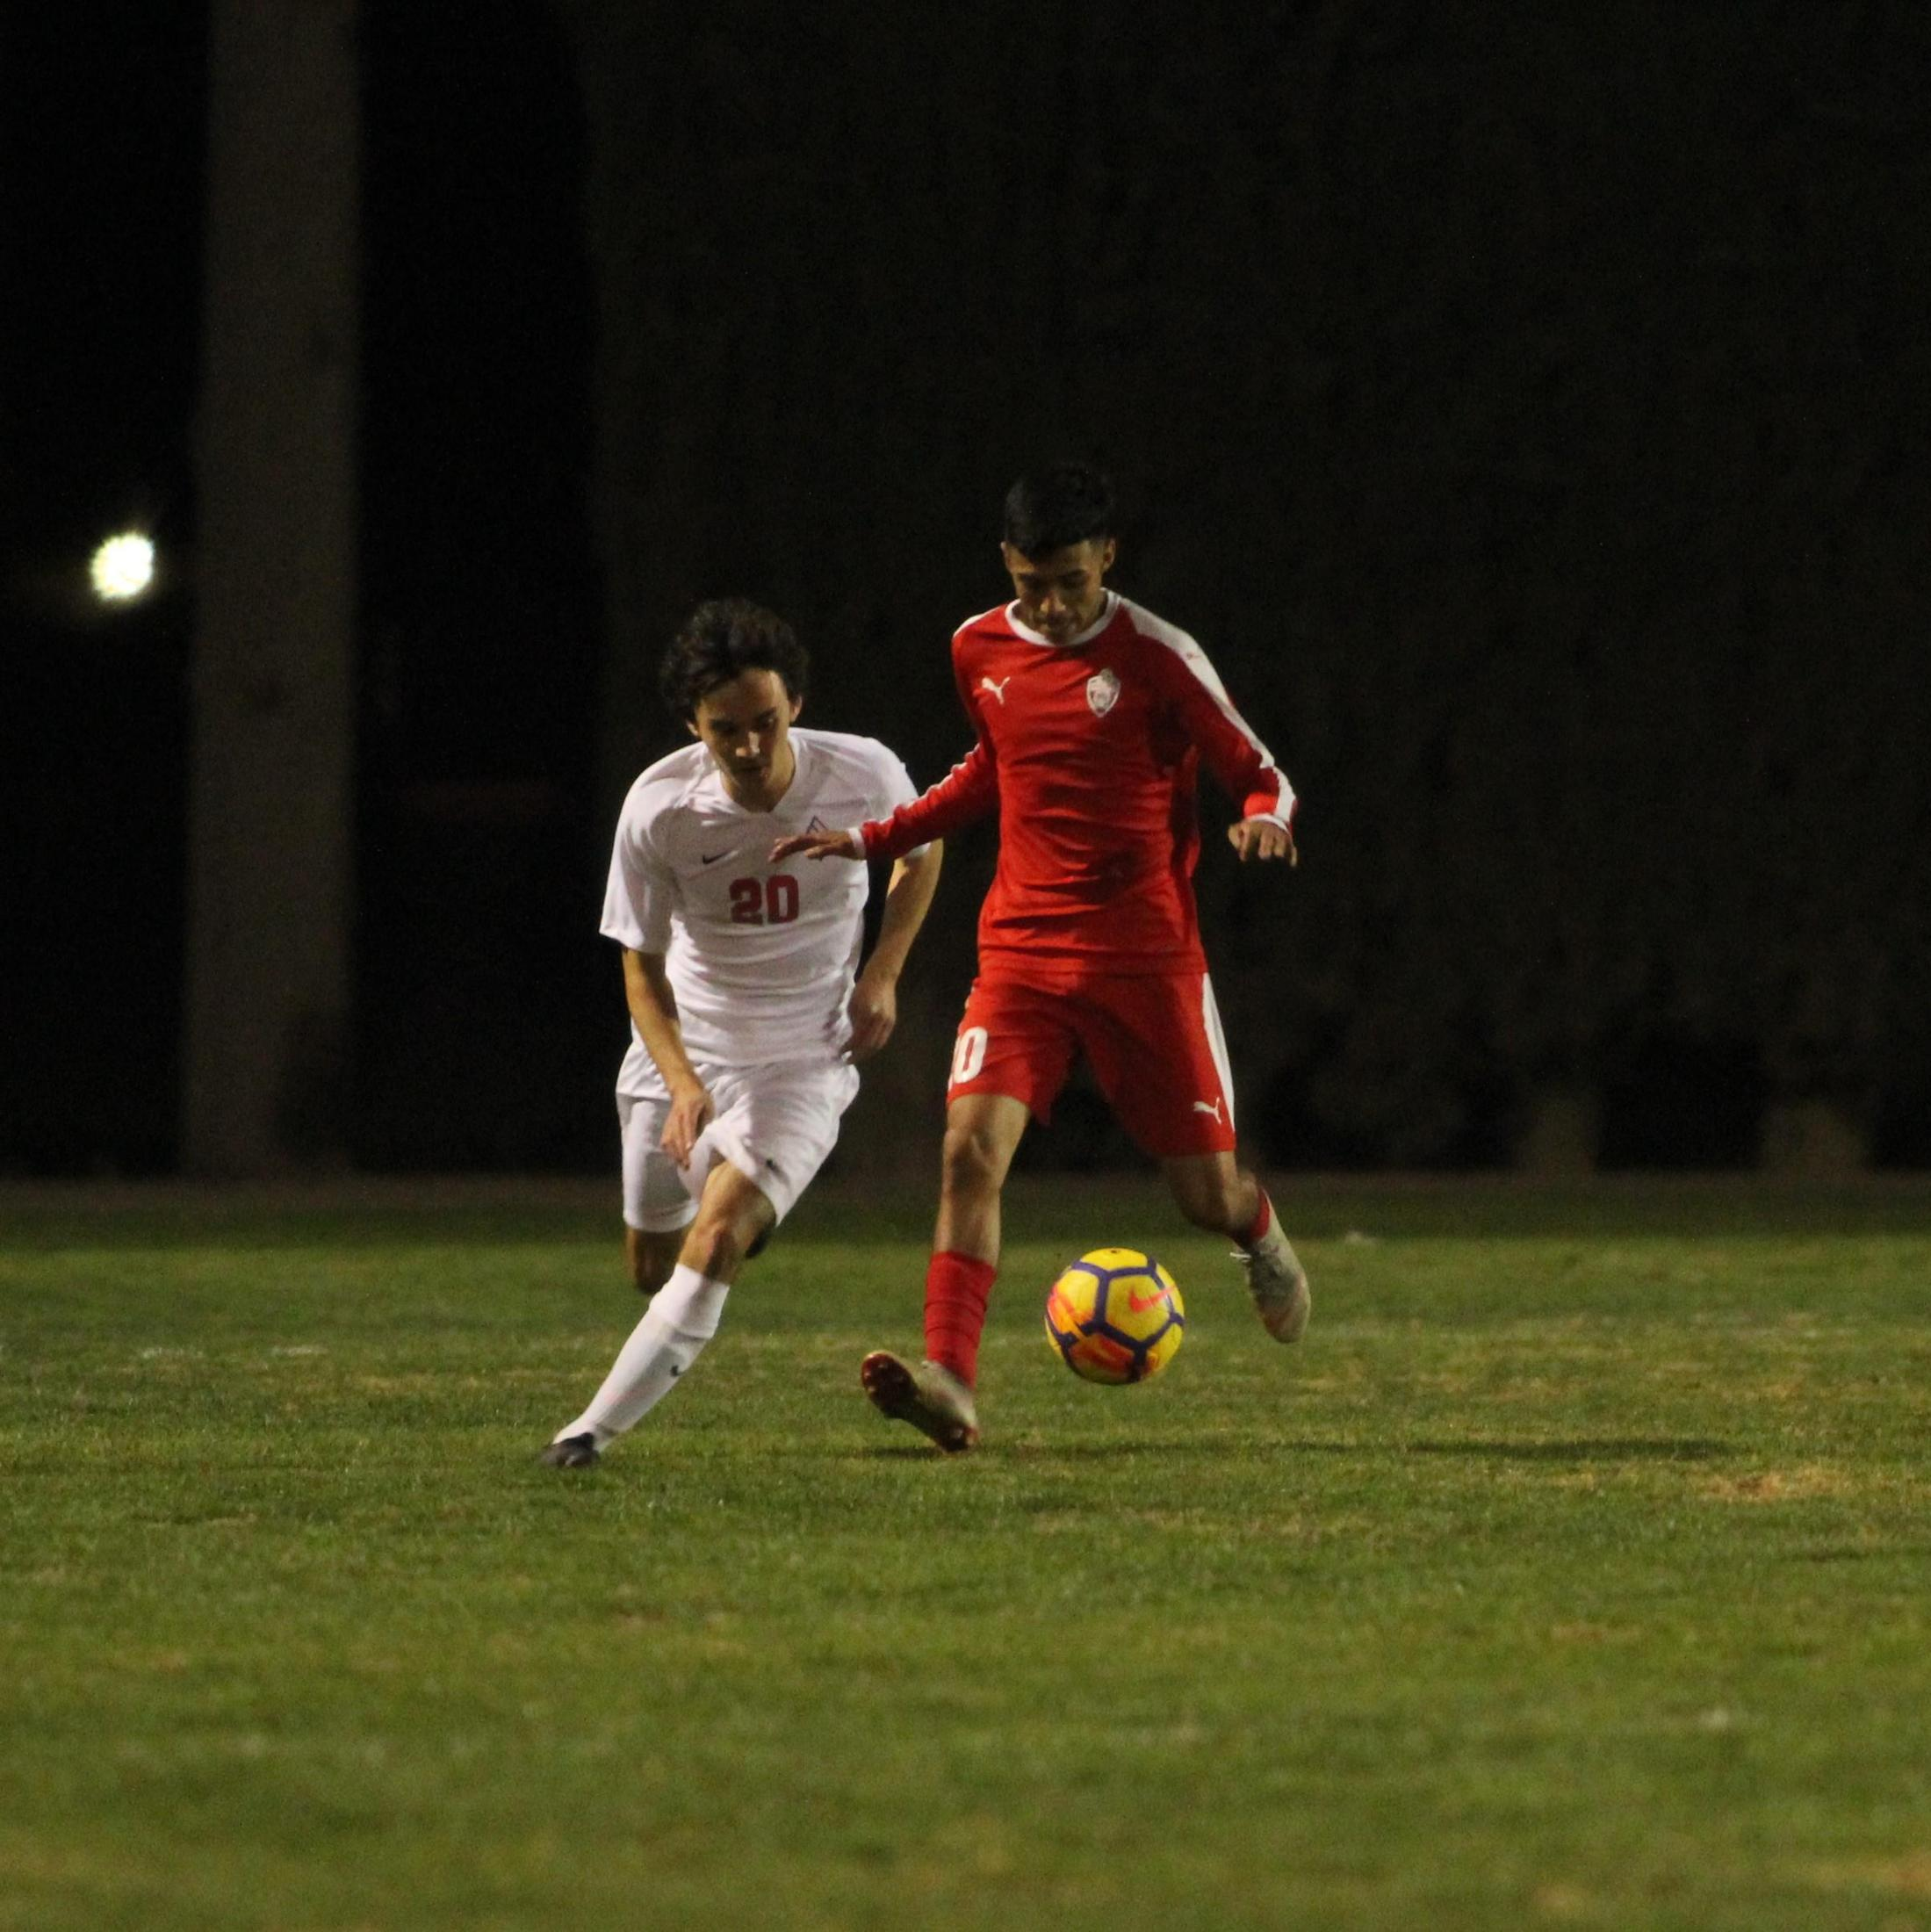 Jacob Corchado running with the ball